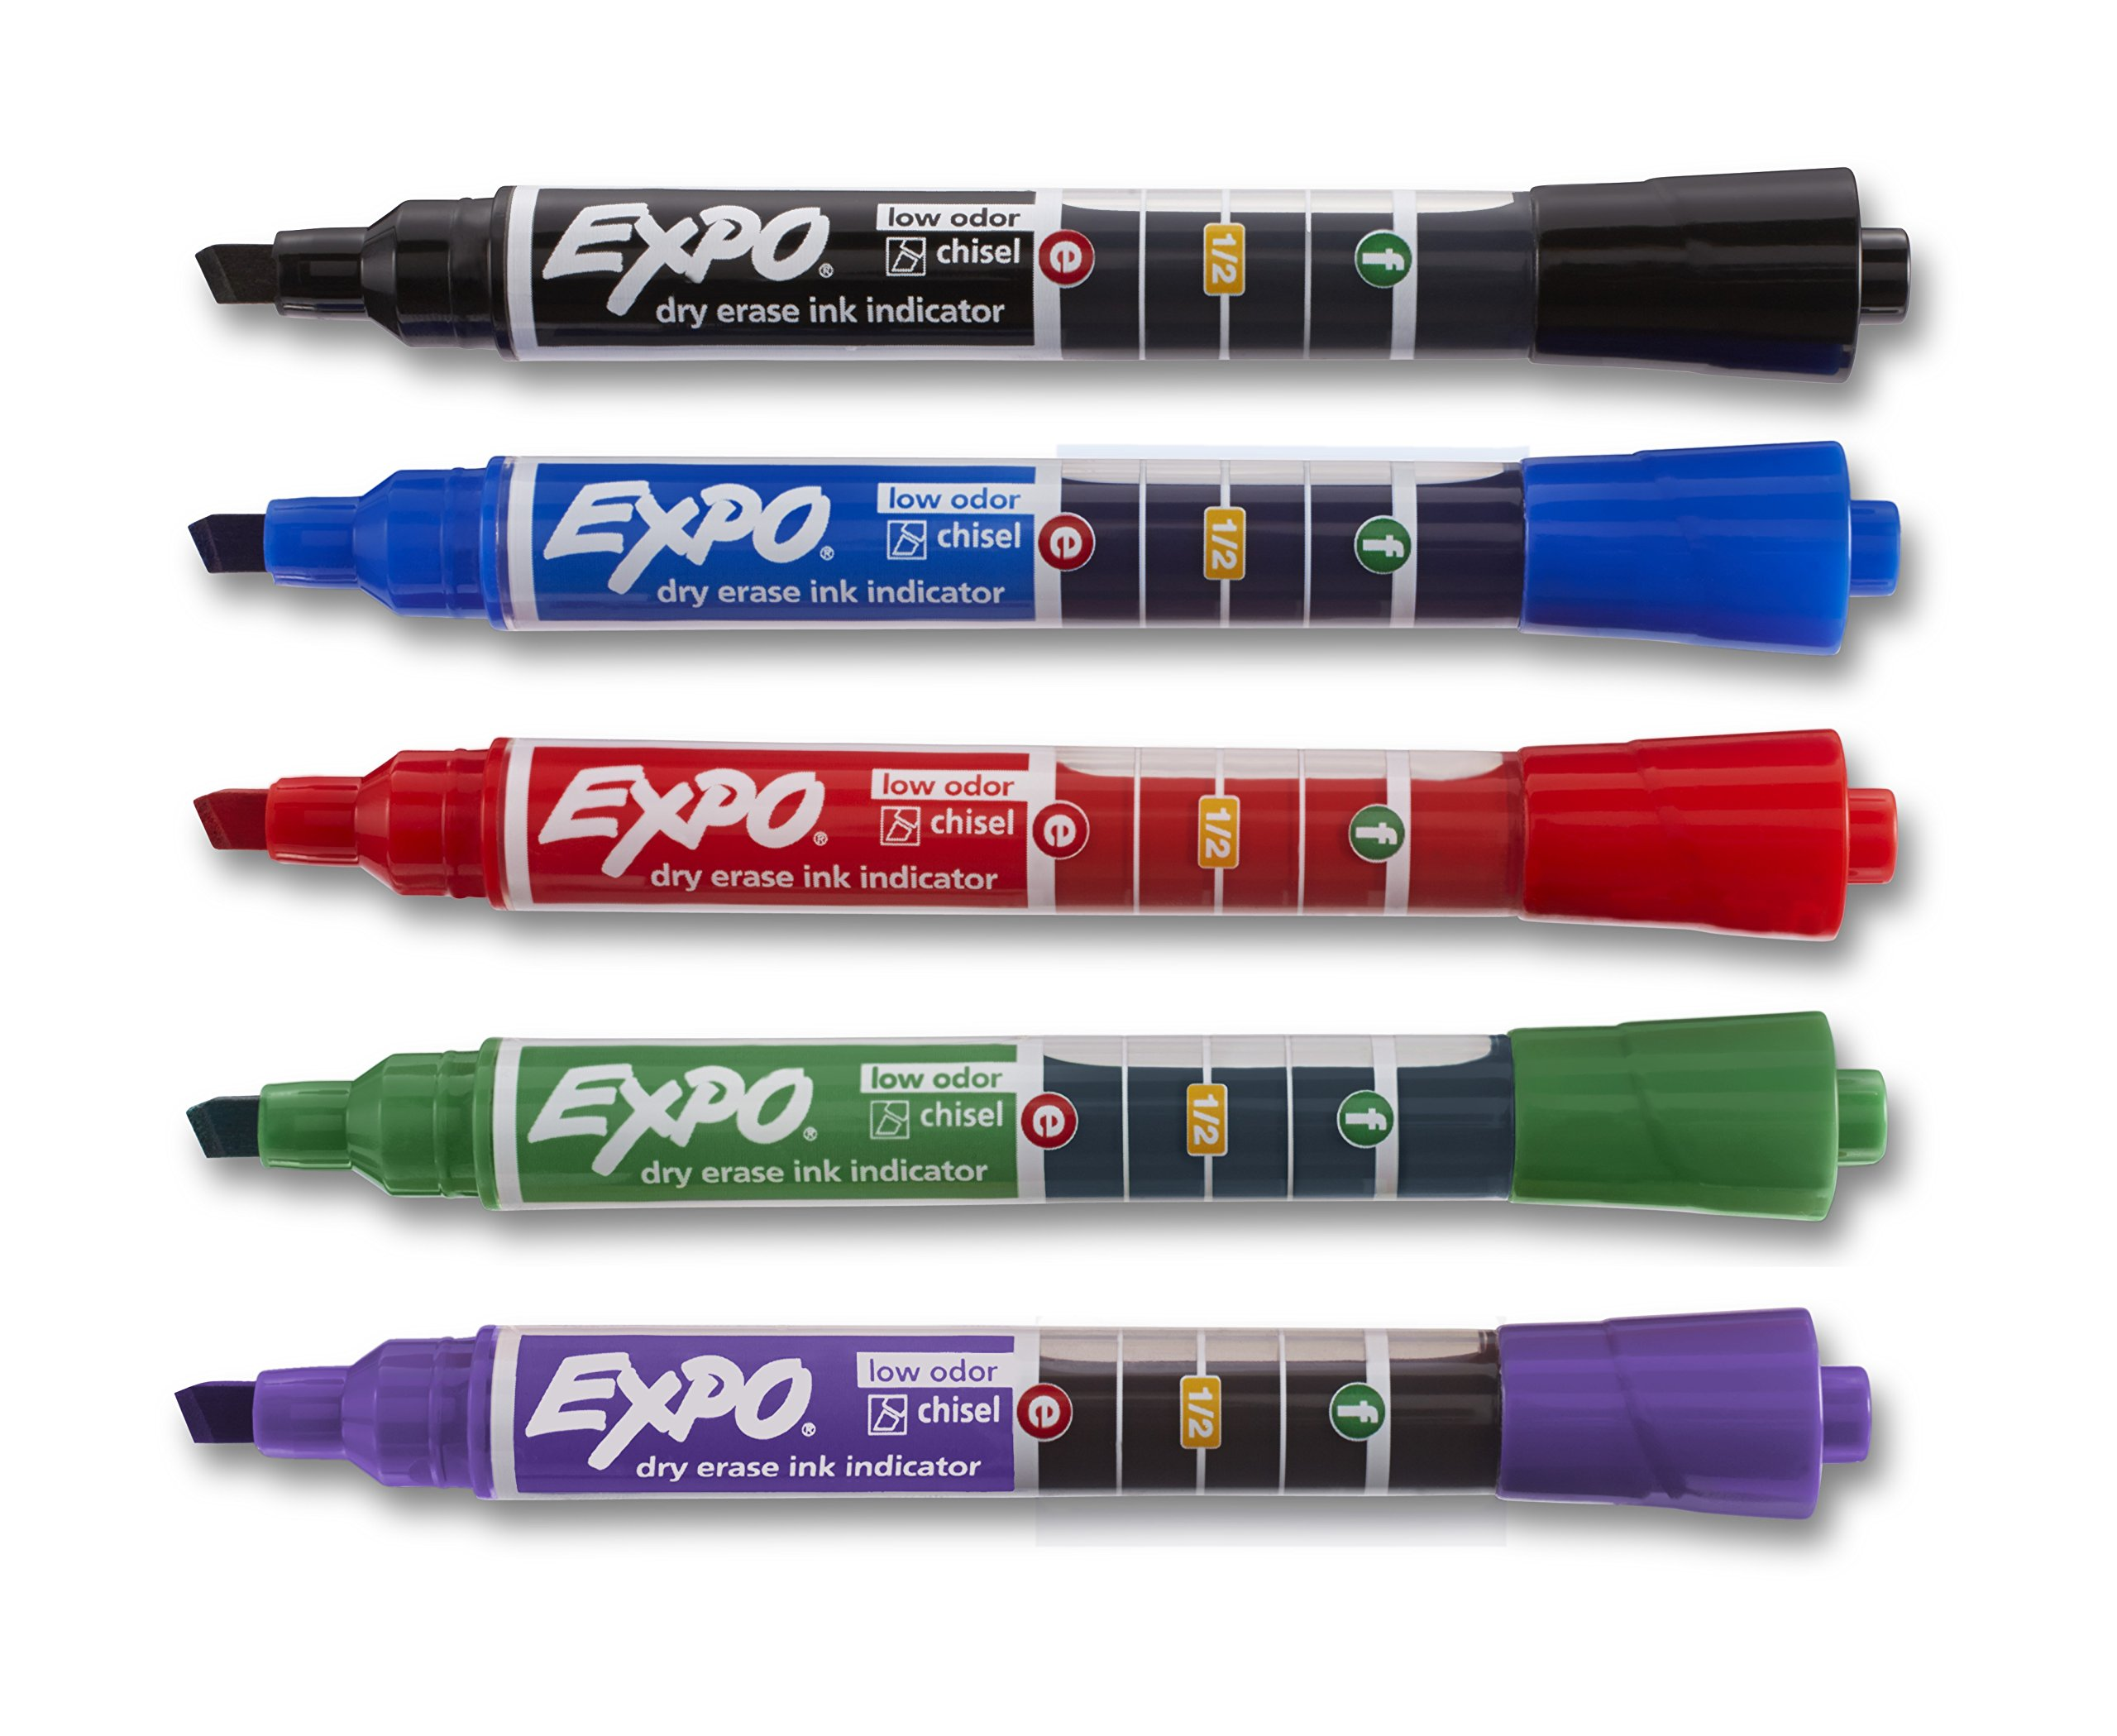 EXPO Dry Erase Markers with Ink Indicator, Chisel Tip, Assorted Colors, Box of 24 by Expo (Image #4)